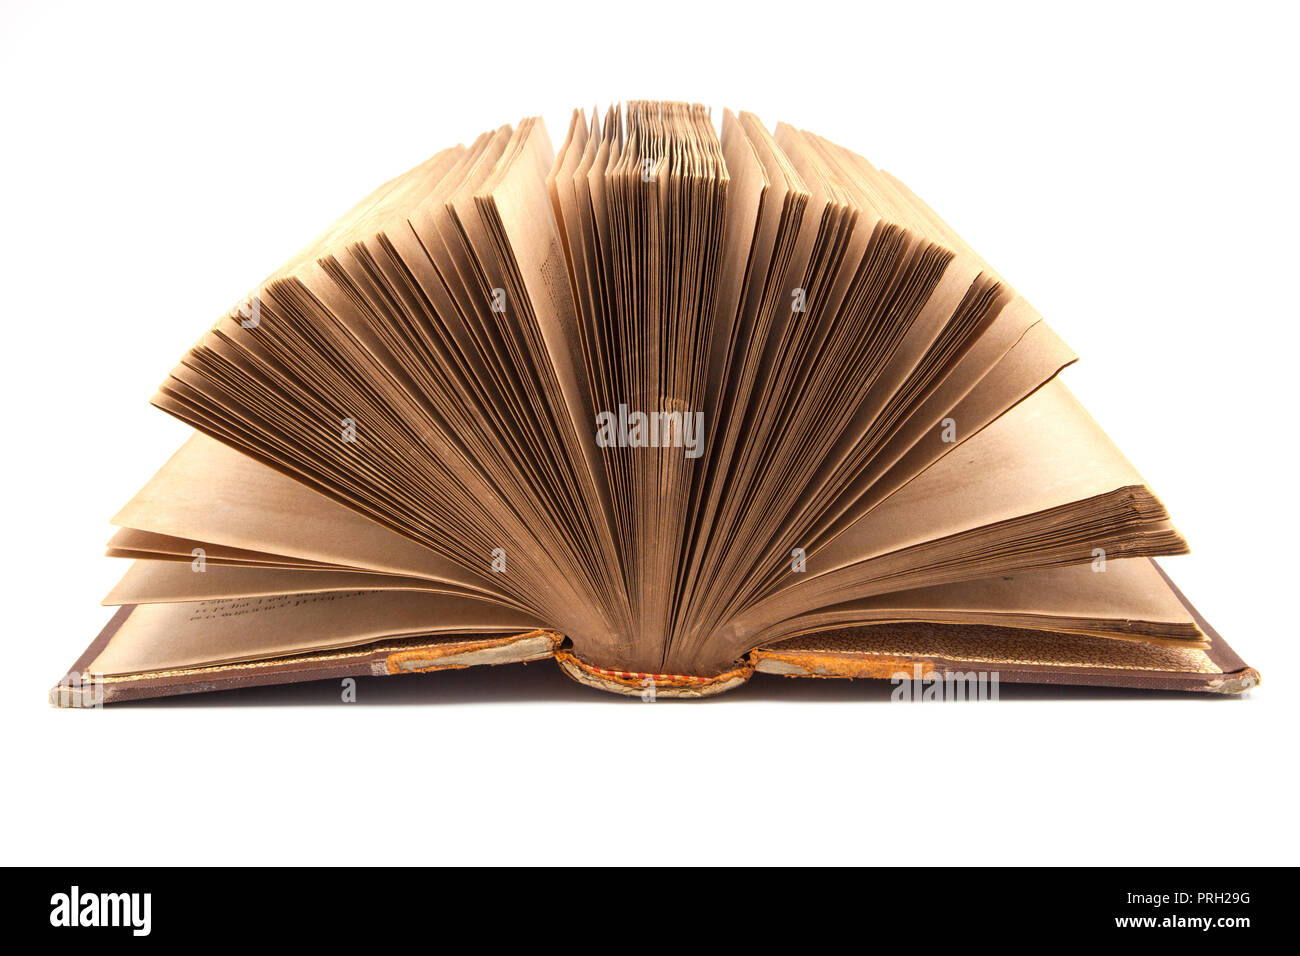 book ancient and worn out on white fund - Stock Image